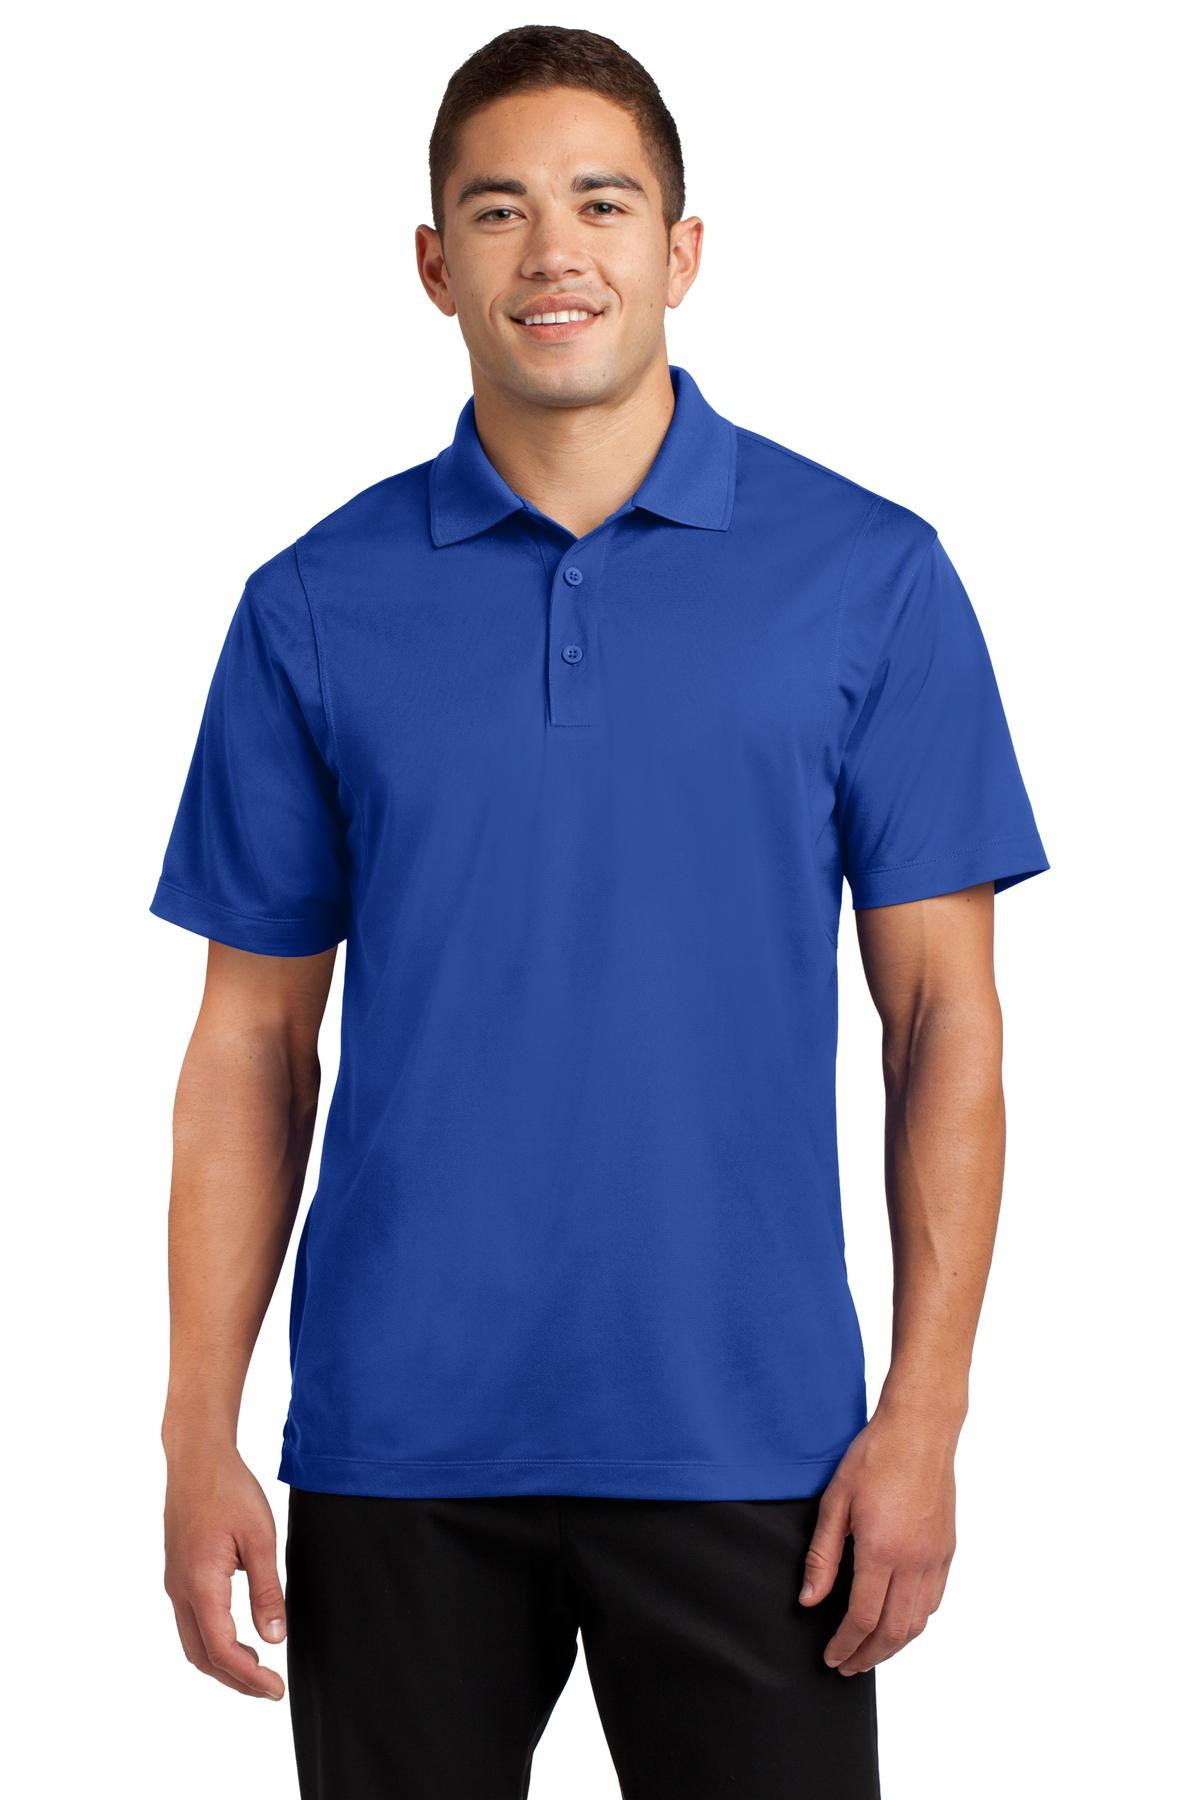 Sport-Tek Tall Micropique Sport-Wick Polo Shirt